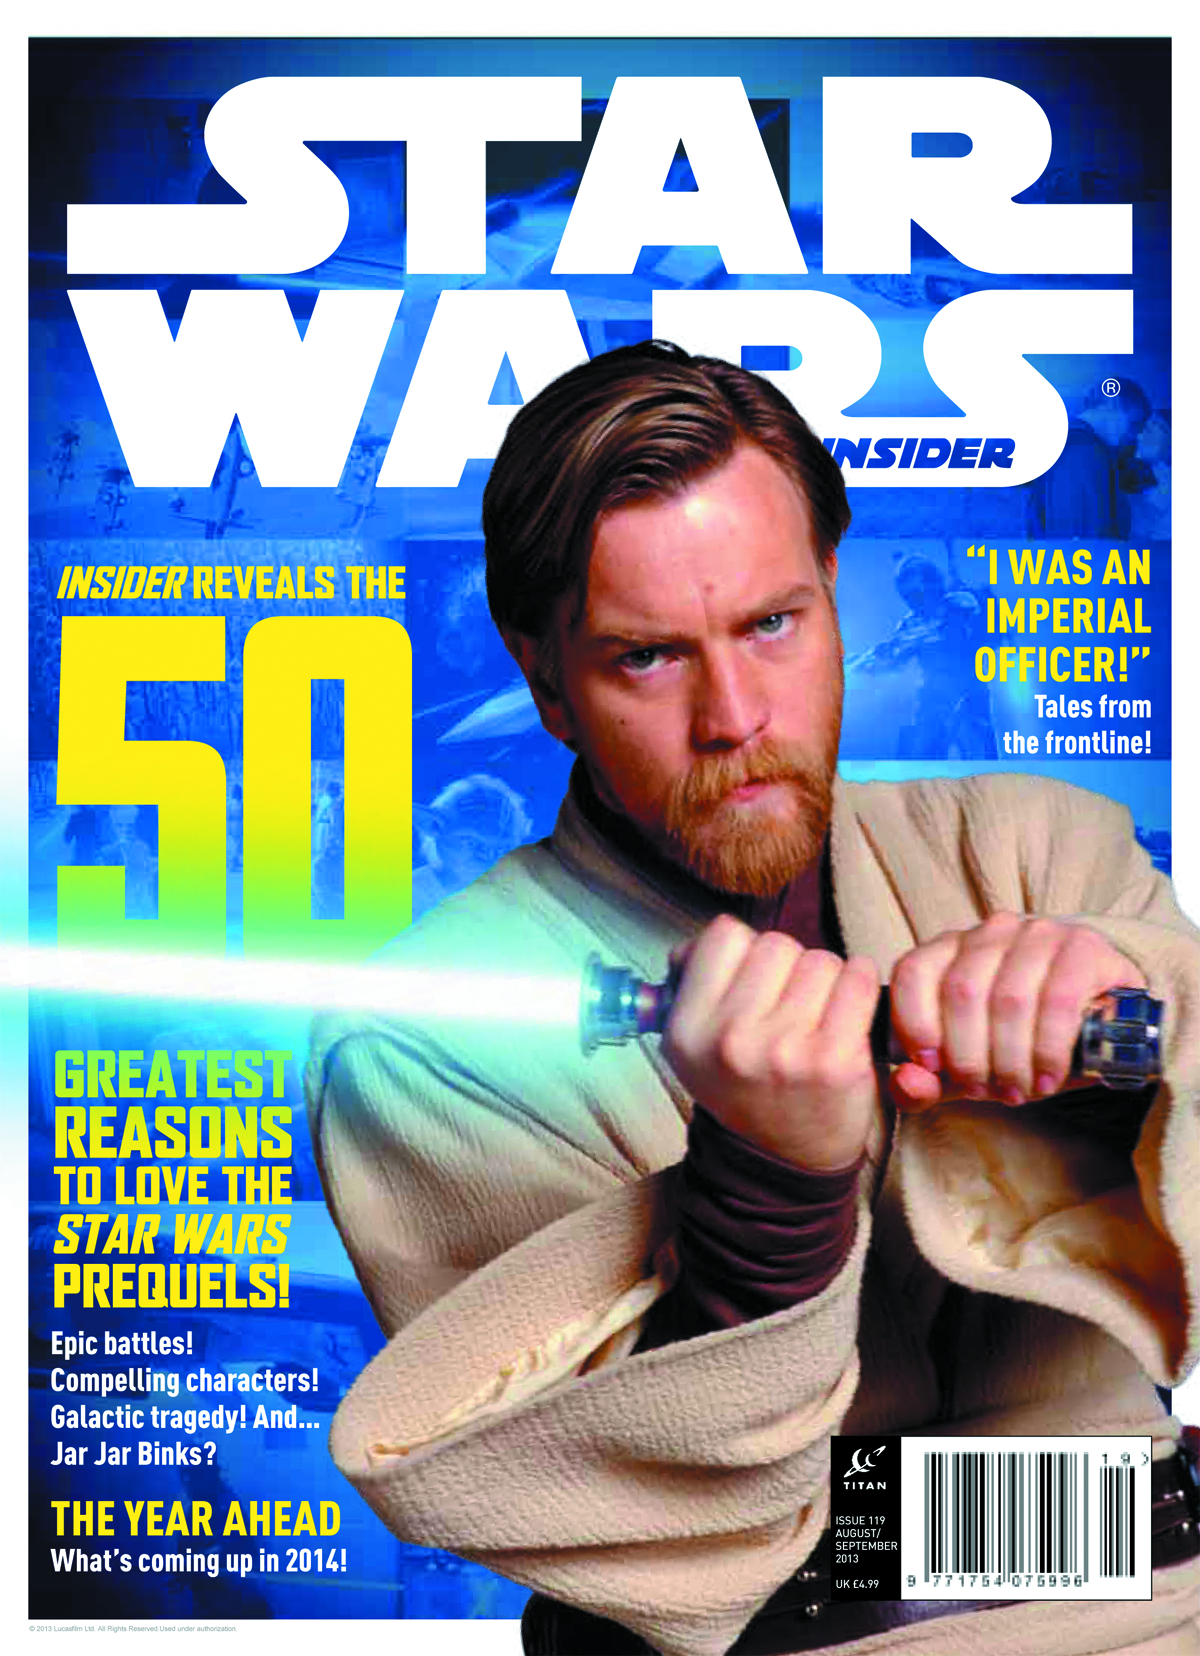 STAR WARS INSIDER #147 NEWSSTAND ED